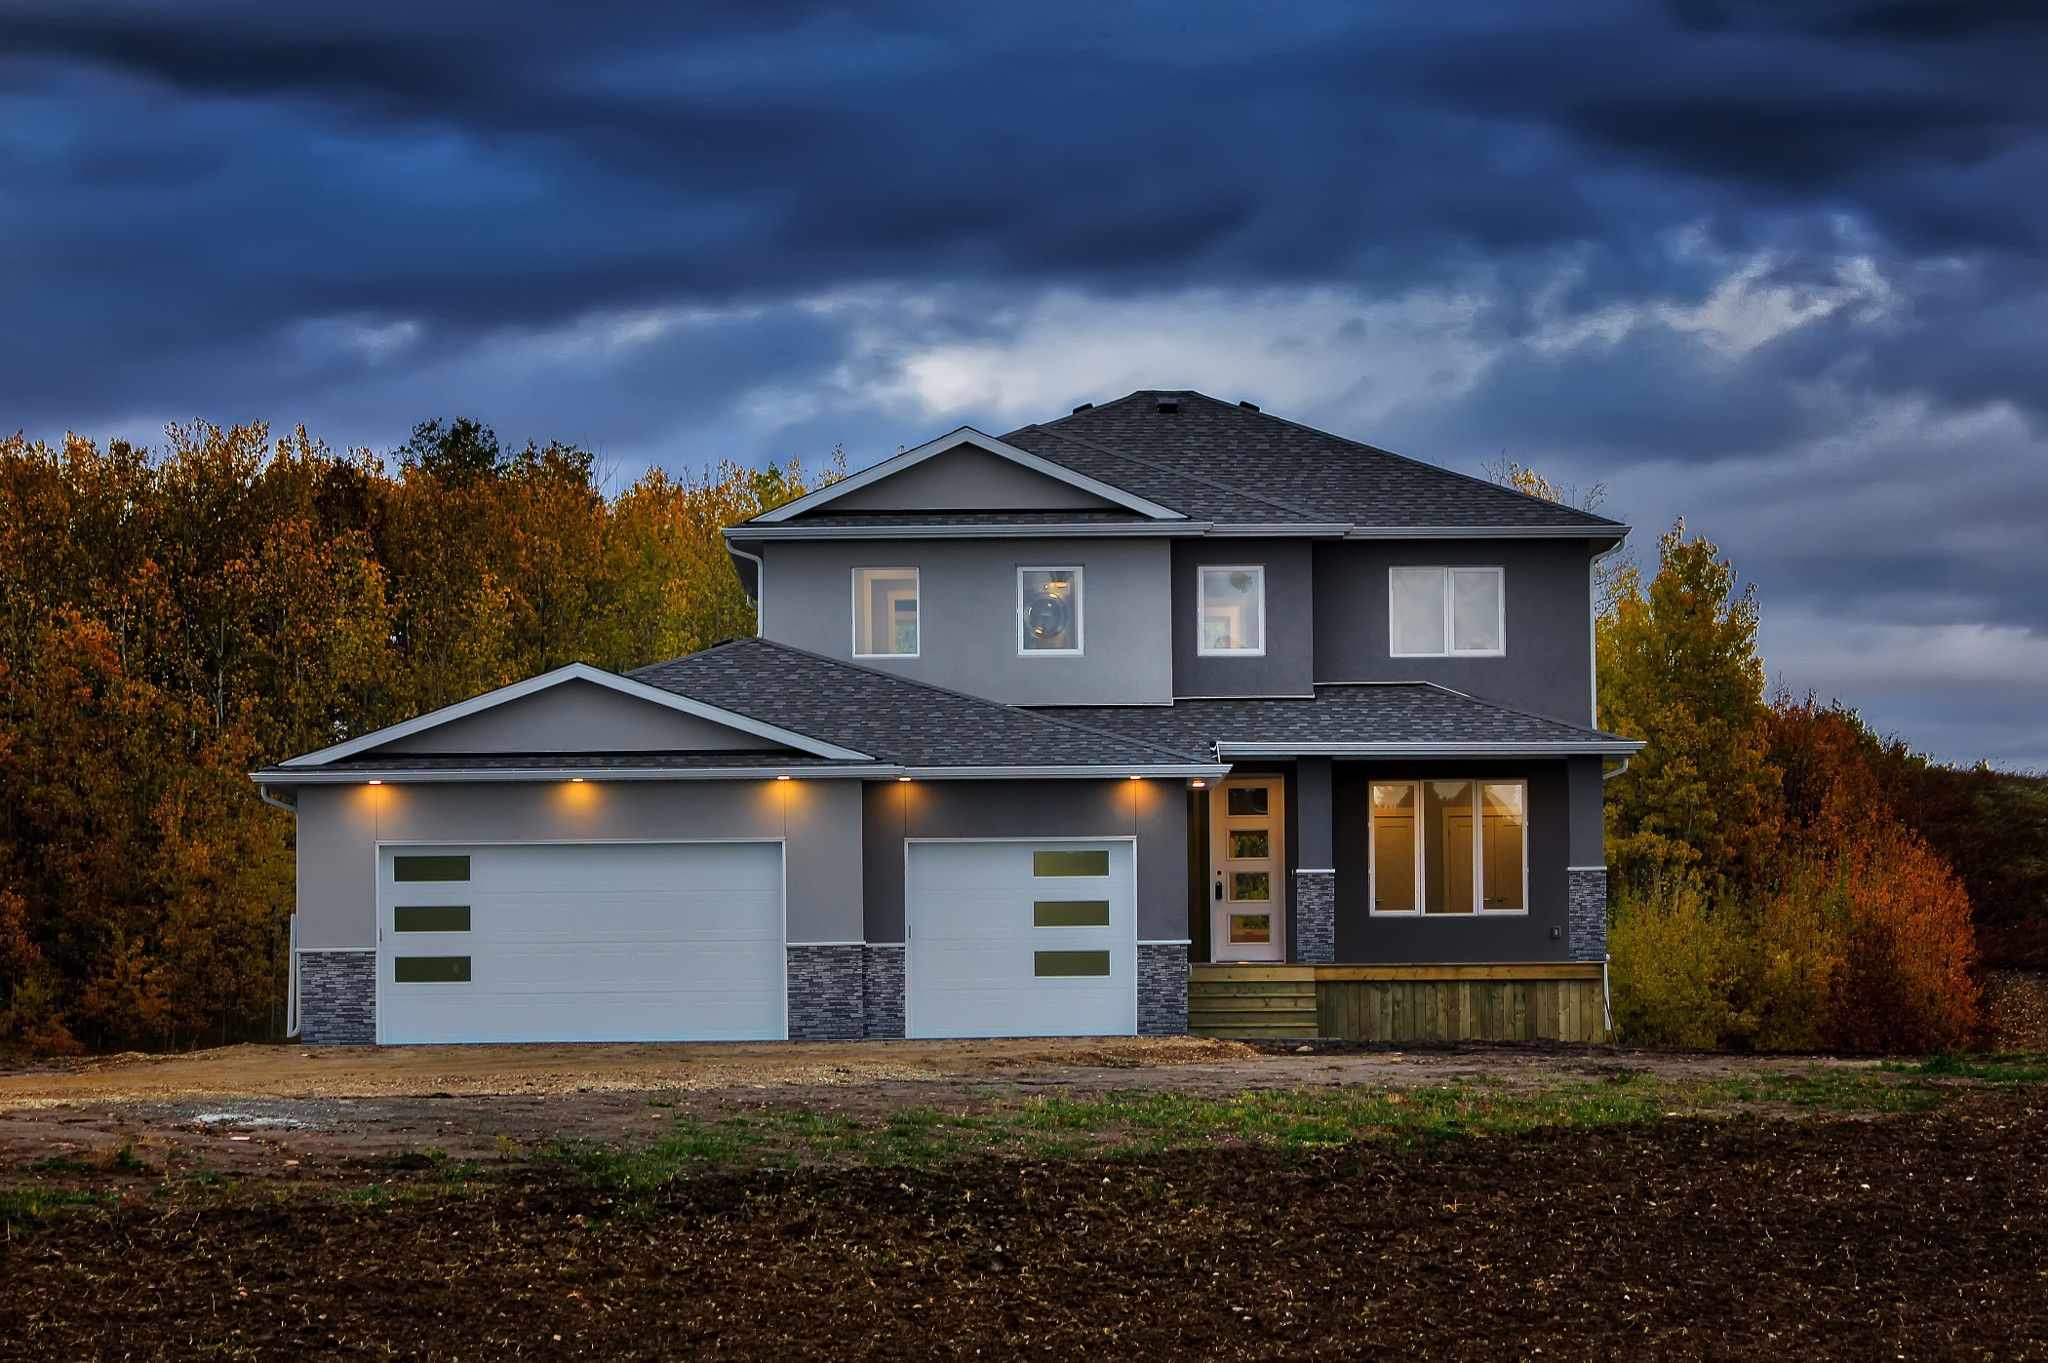 Main Photo: 17 54514 12 Range in Rural Lac Ste. Anne County: Tuscany Hills House for sale